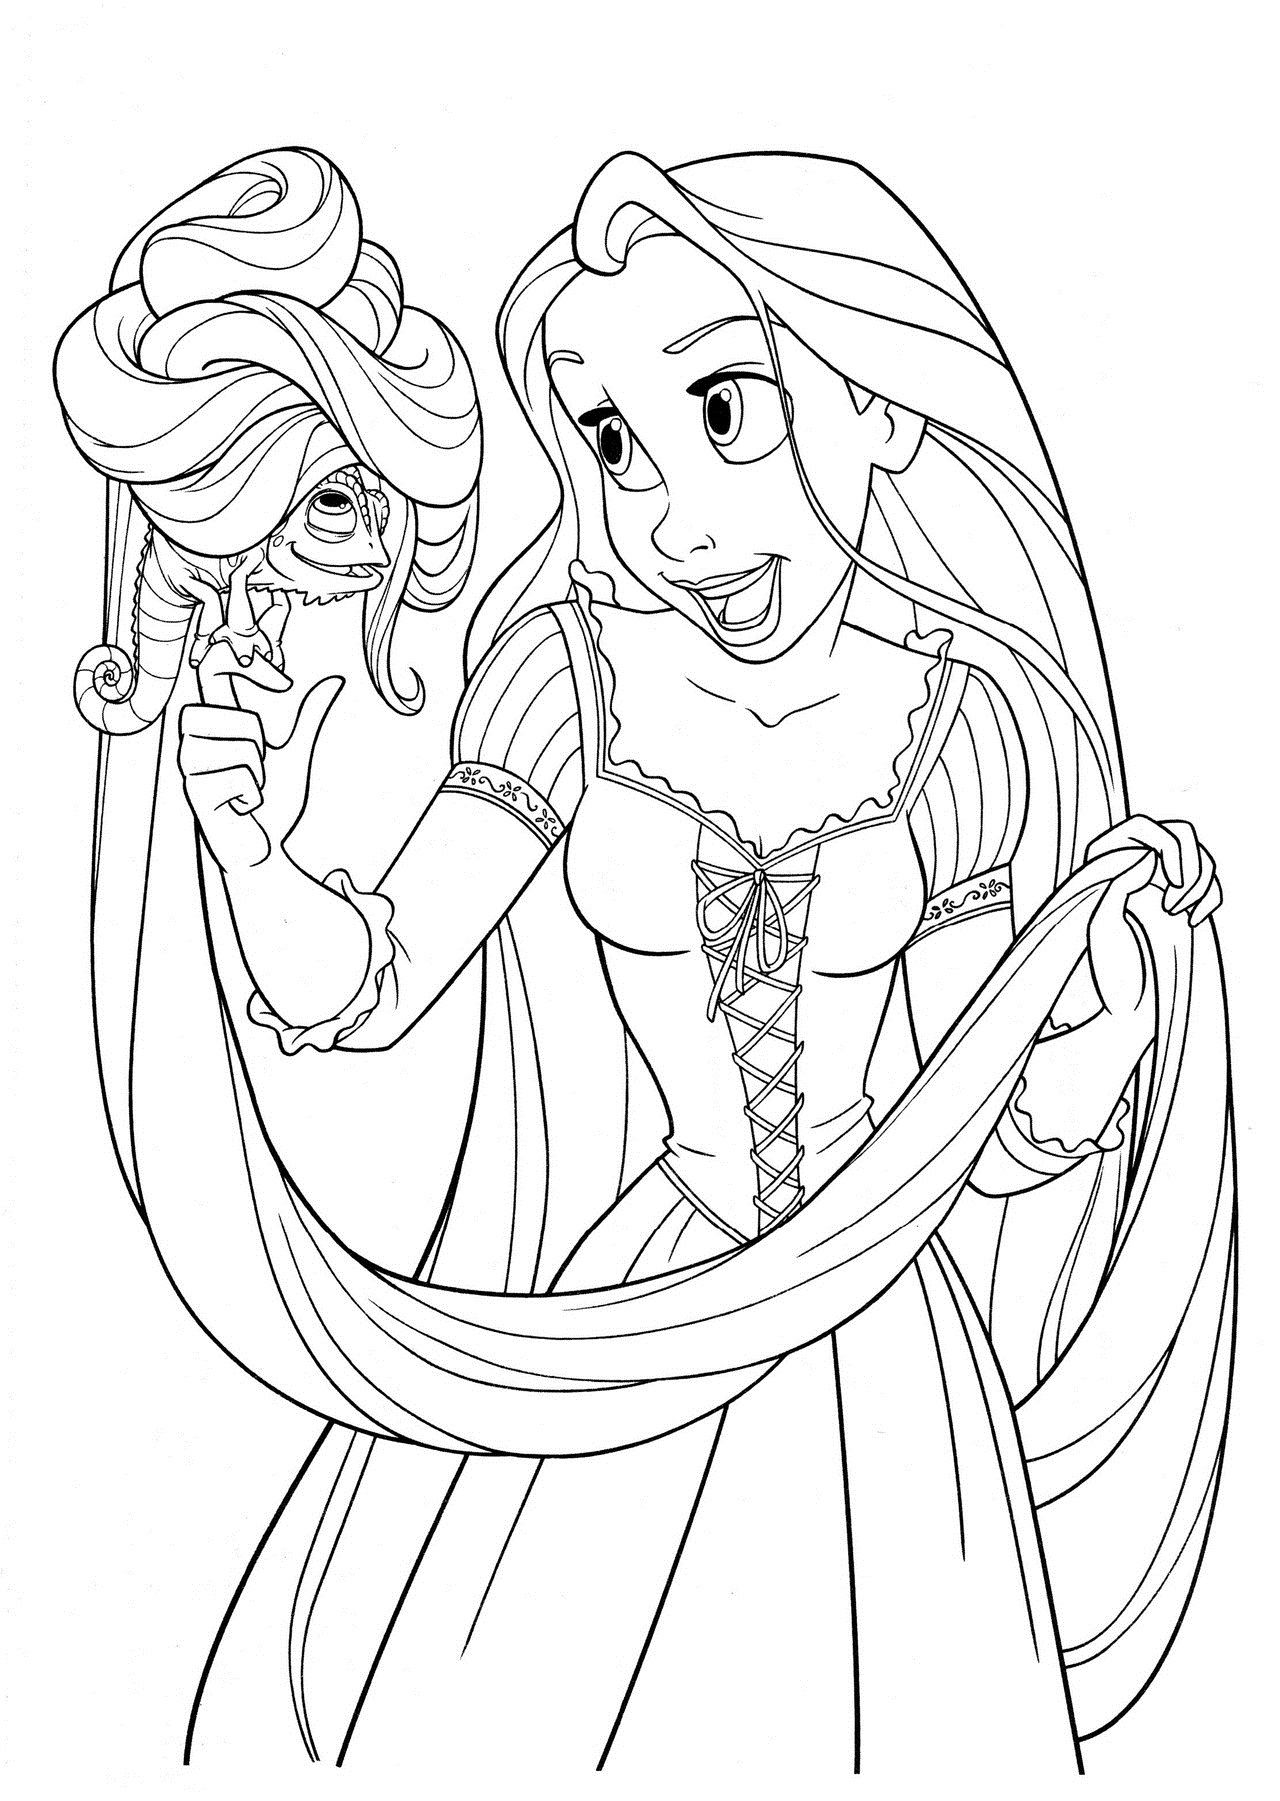 graphic about Rapunzel Printable Coloring Pages called Cost-free Printable Tangled Coloring Webpages For Young children get together period